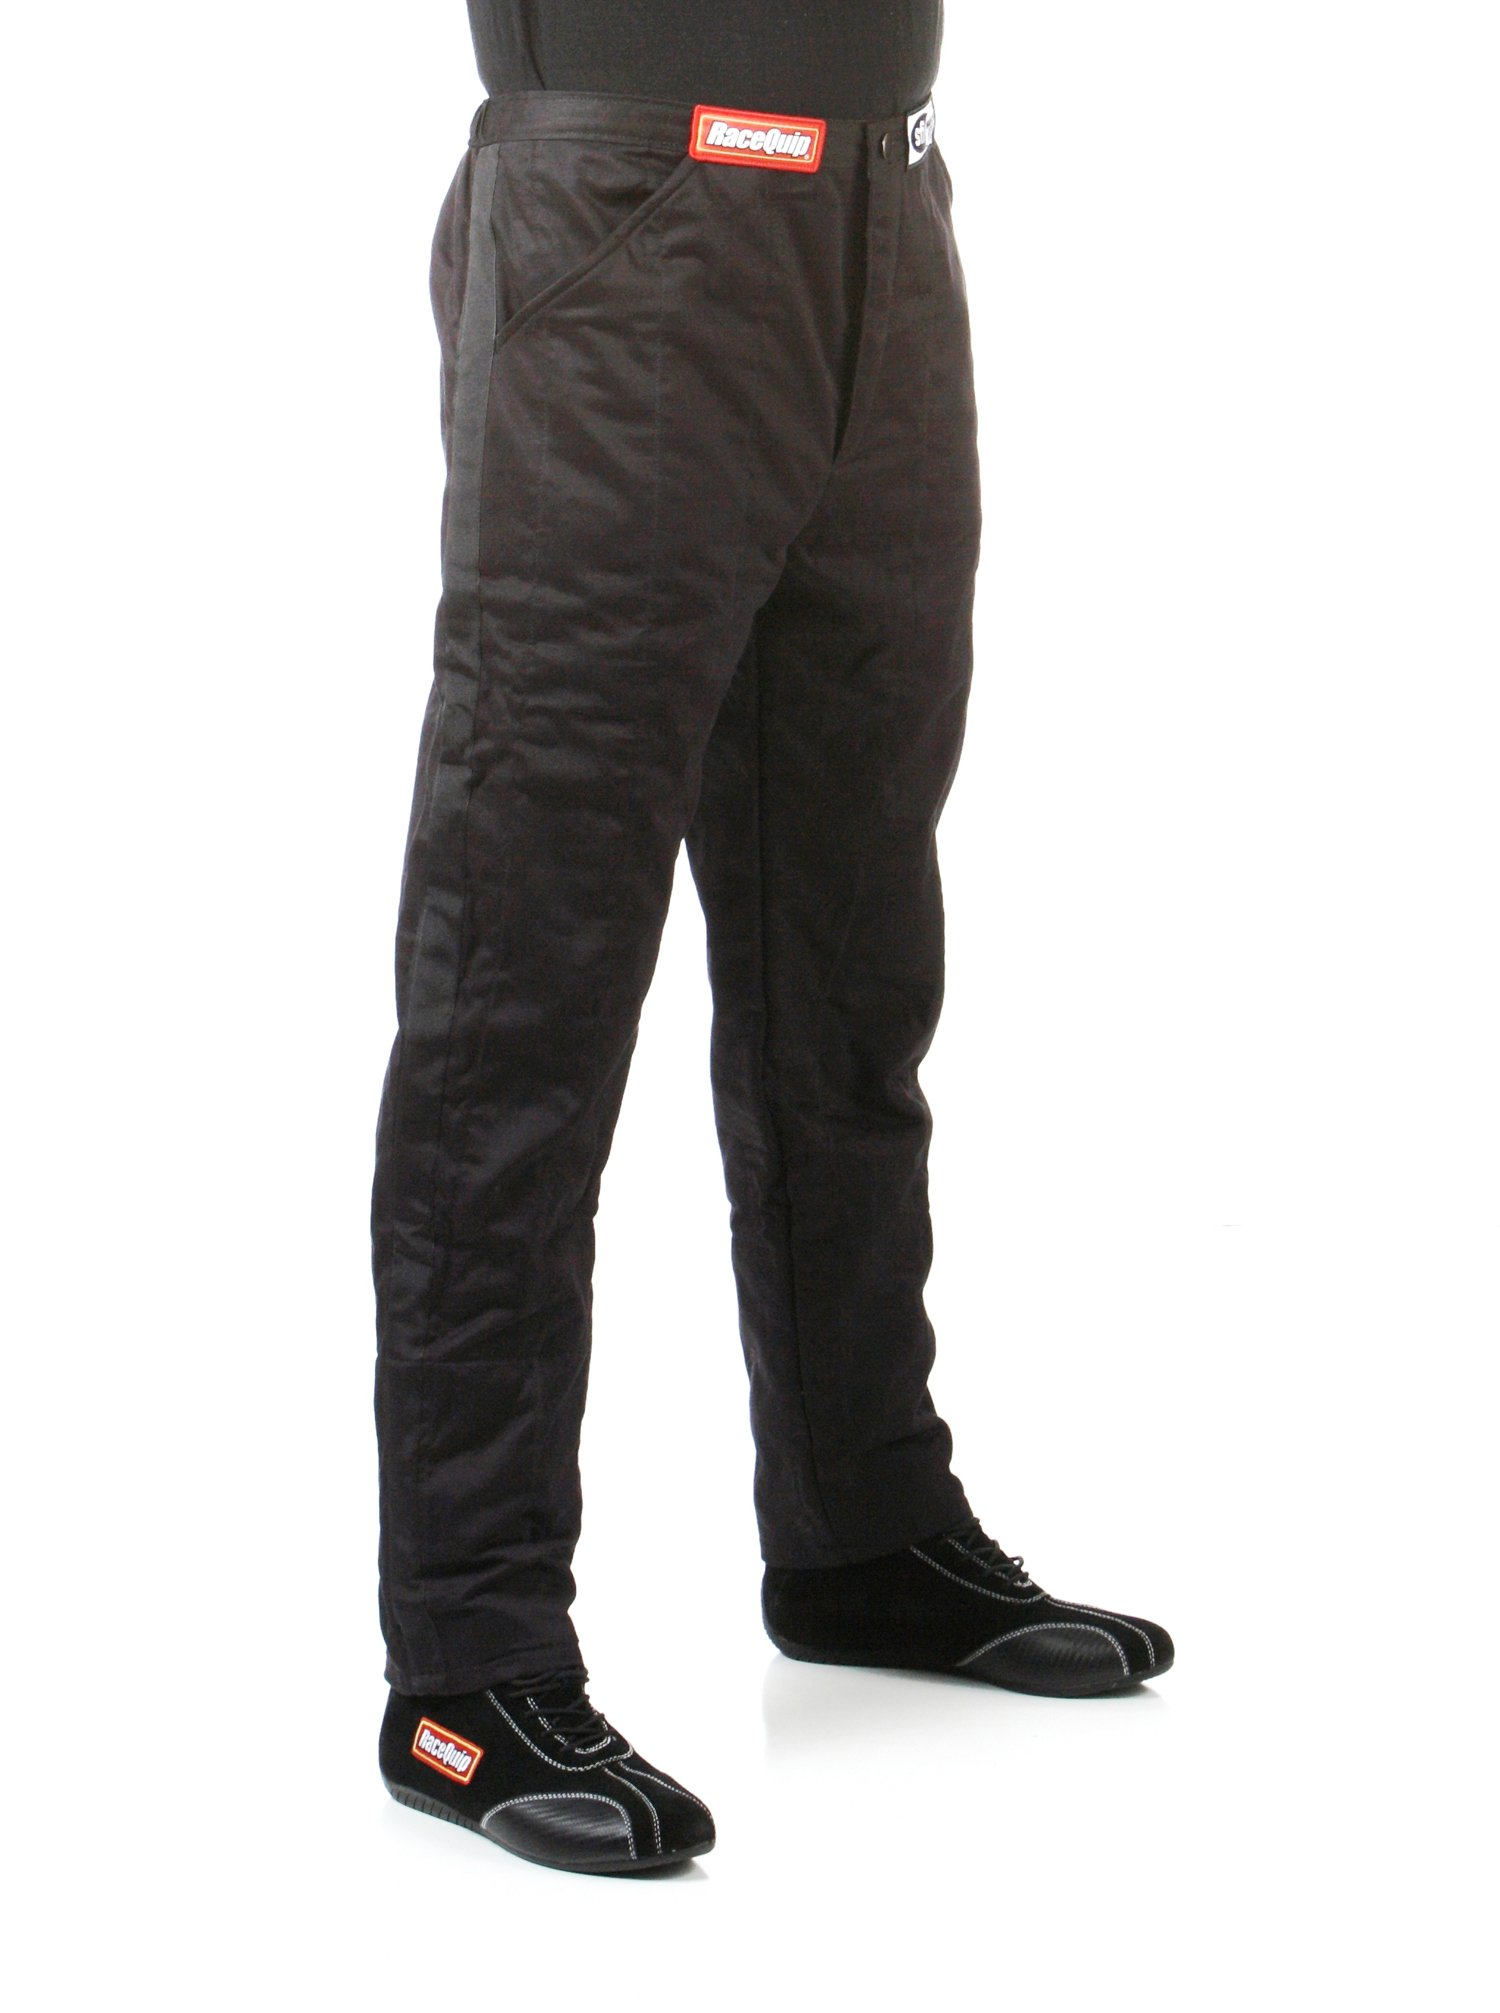 RaceQuip 122008 122 Series XXX-Large Black SFI 3.2A/1 Multi-Layer Driving Pant